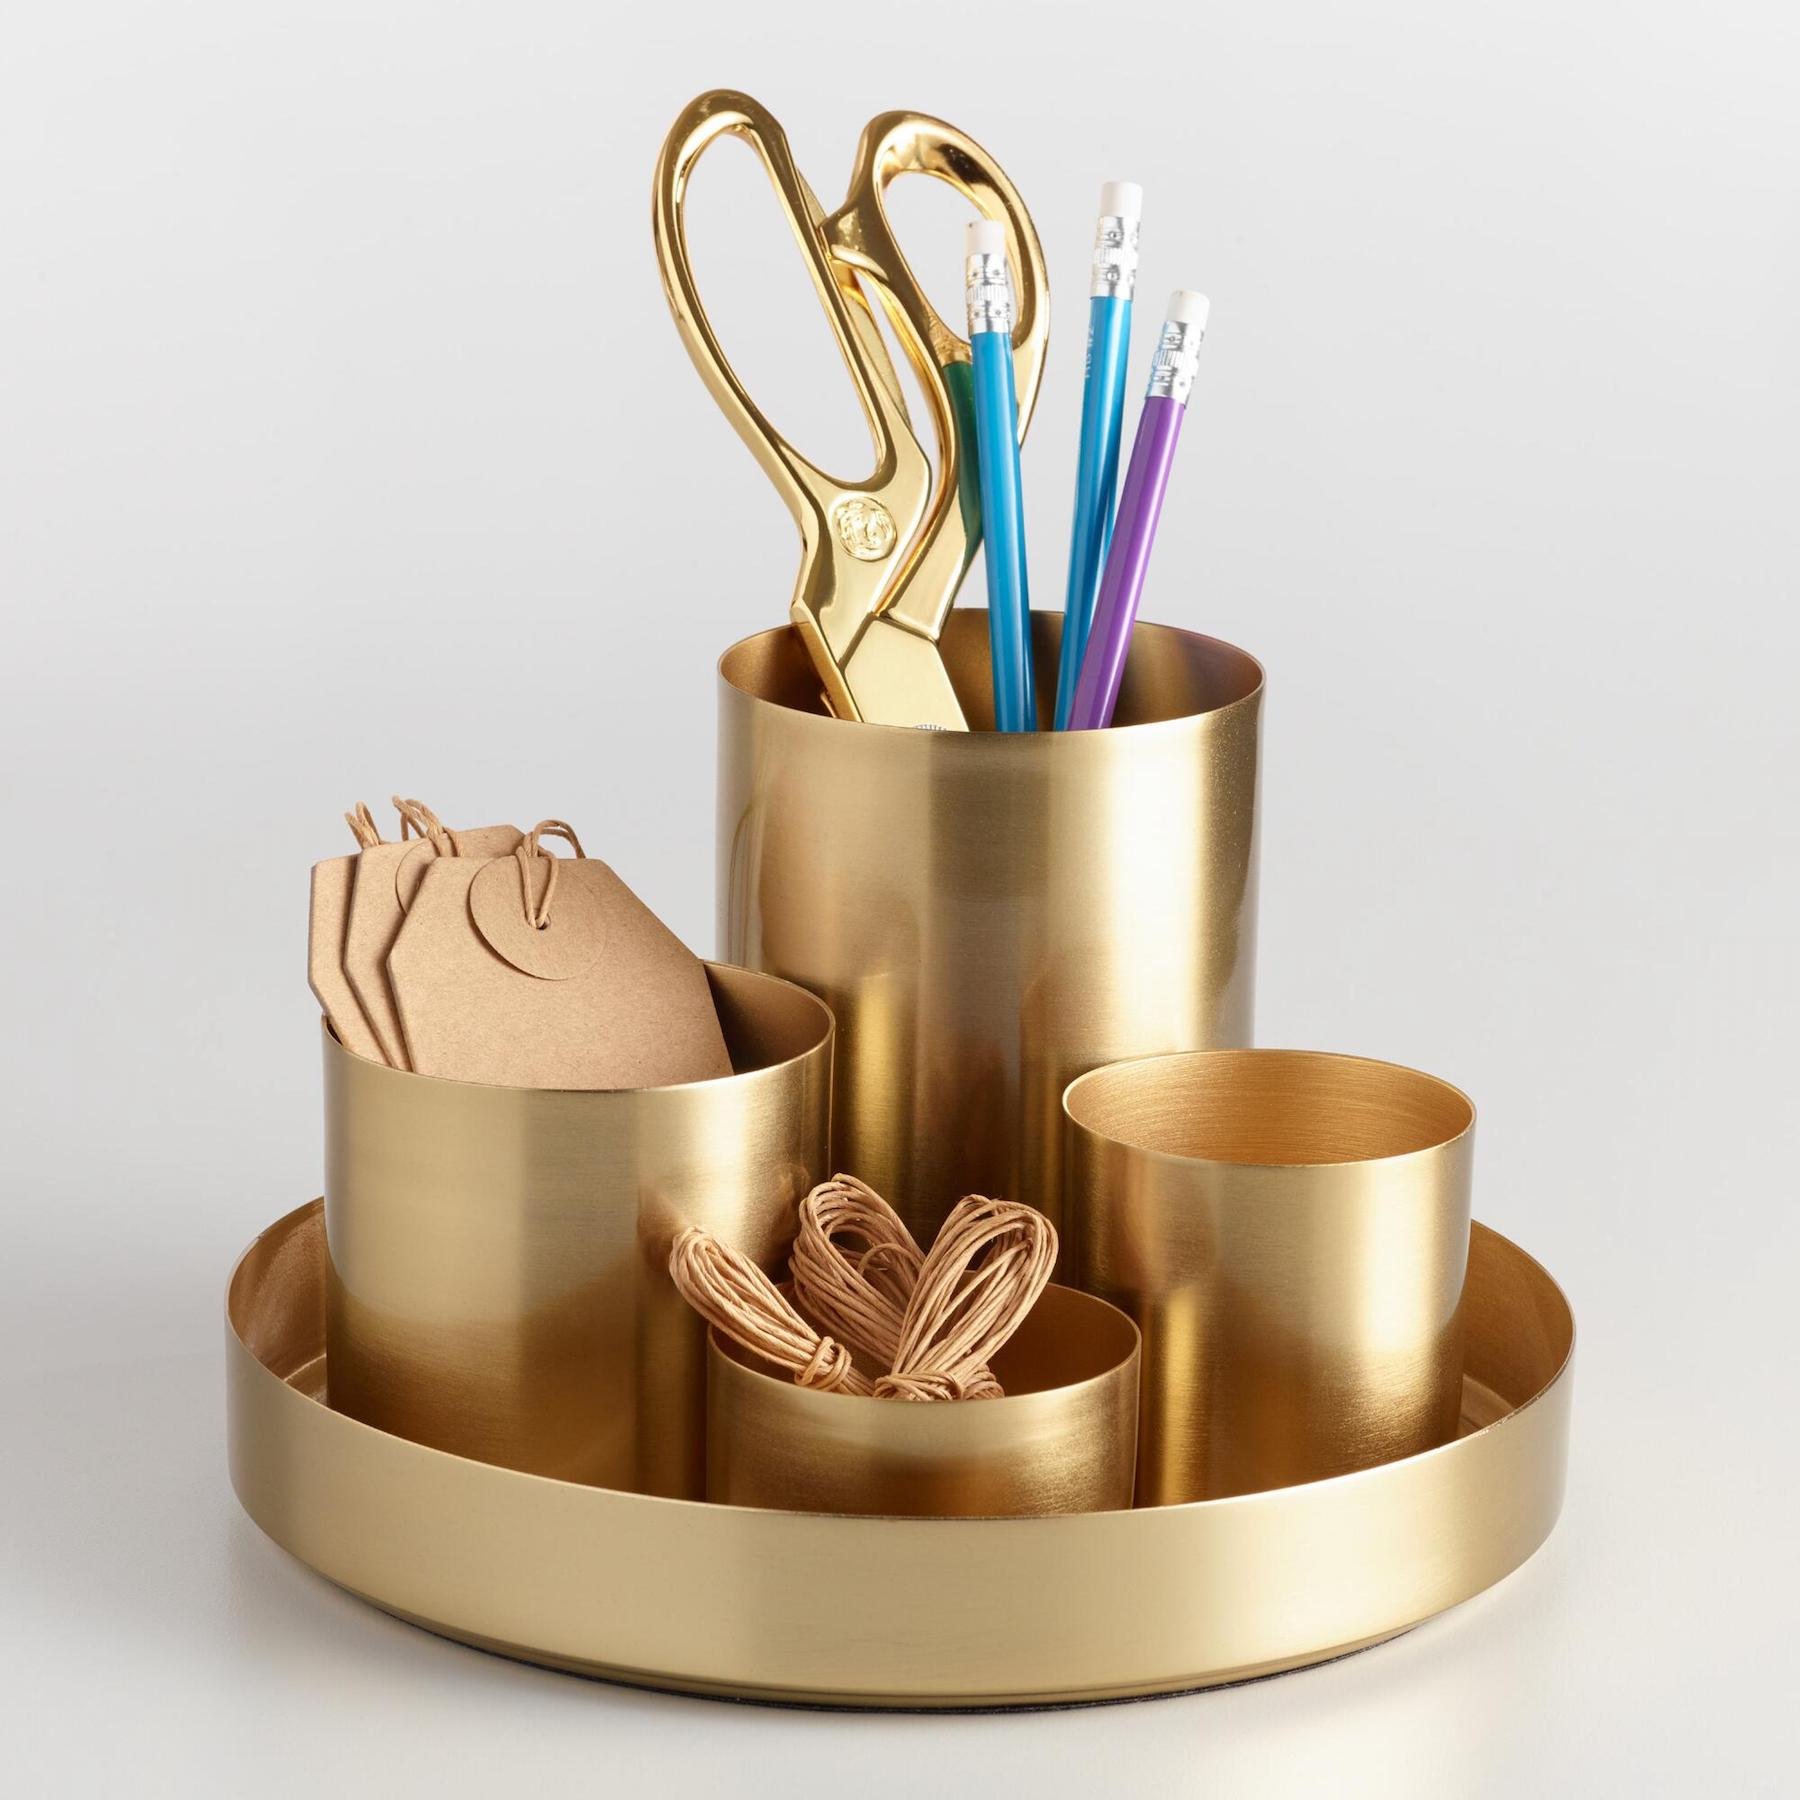 Best Desk Organizers, Gold cups